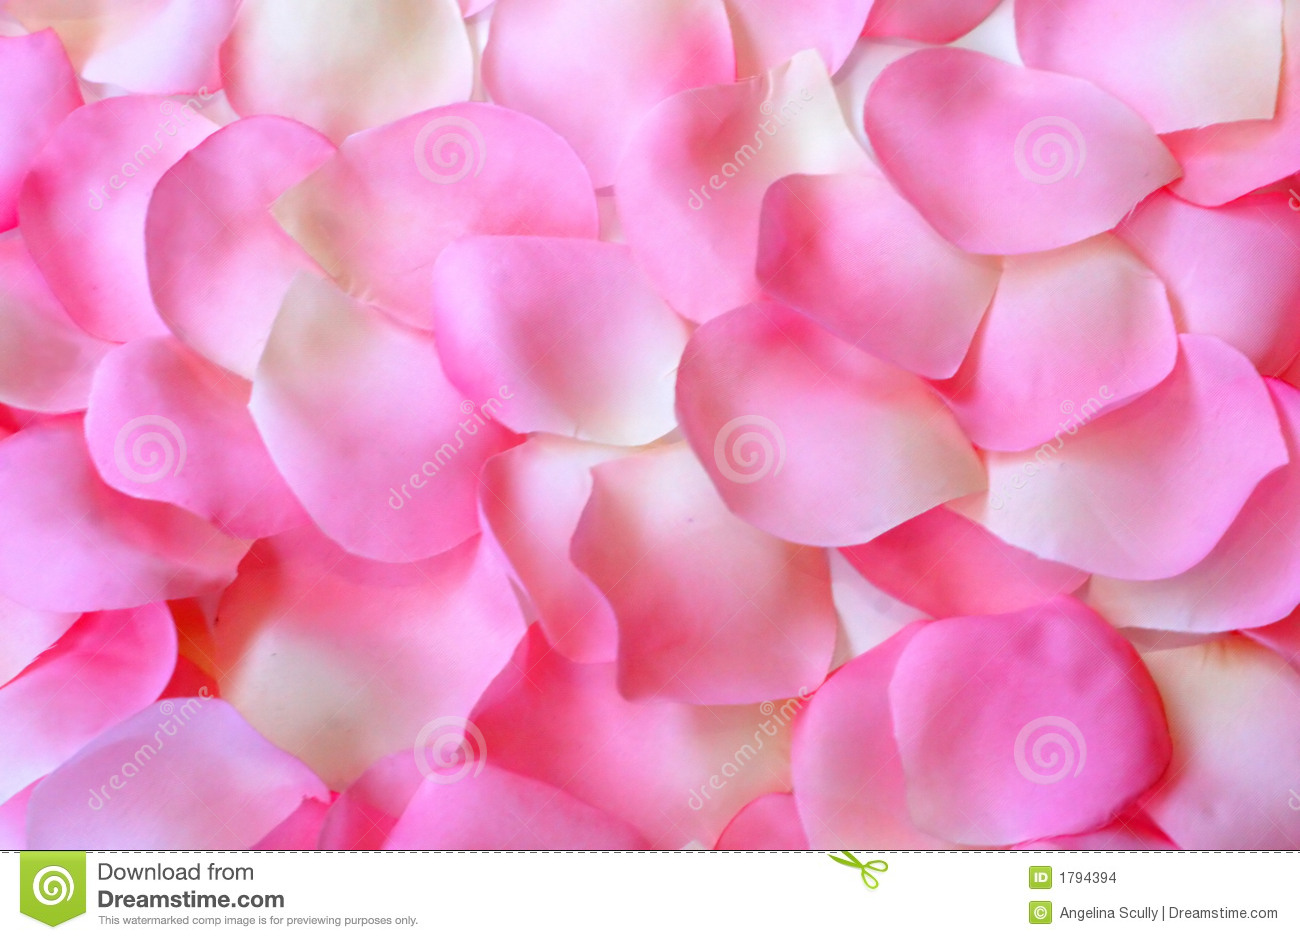 Pink and white rose petals arranged as a background.